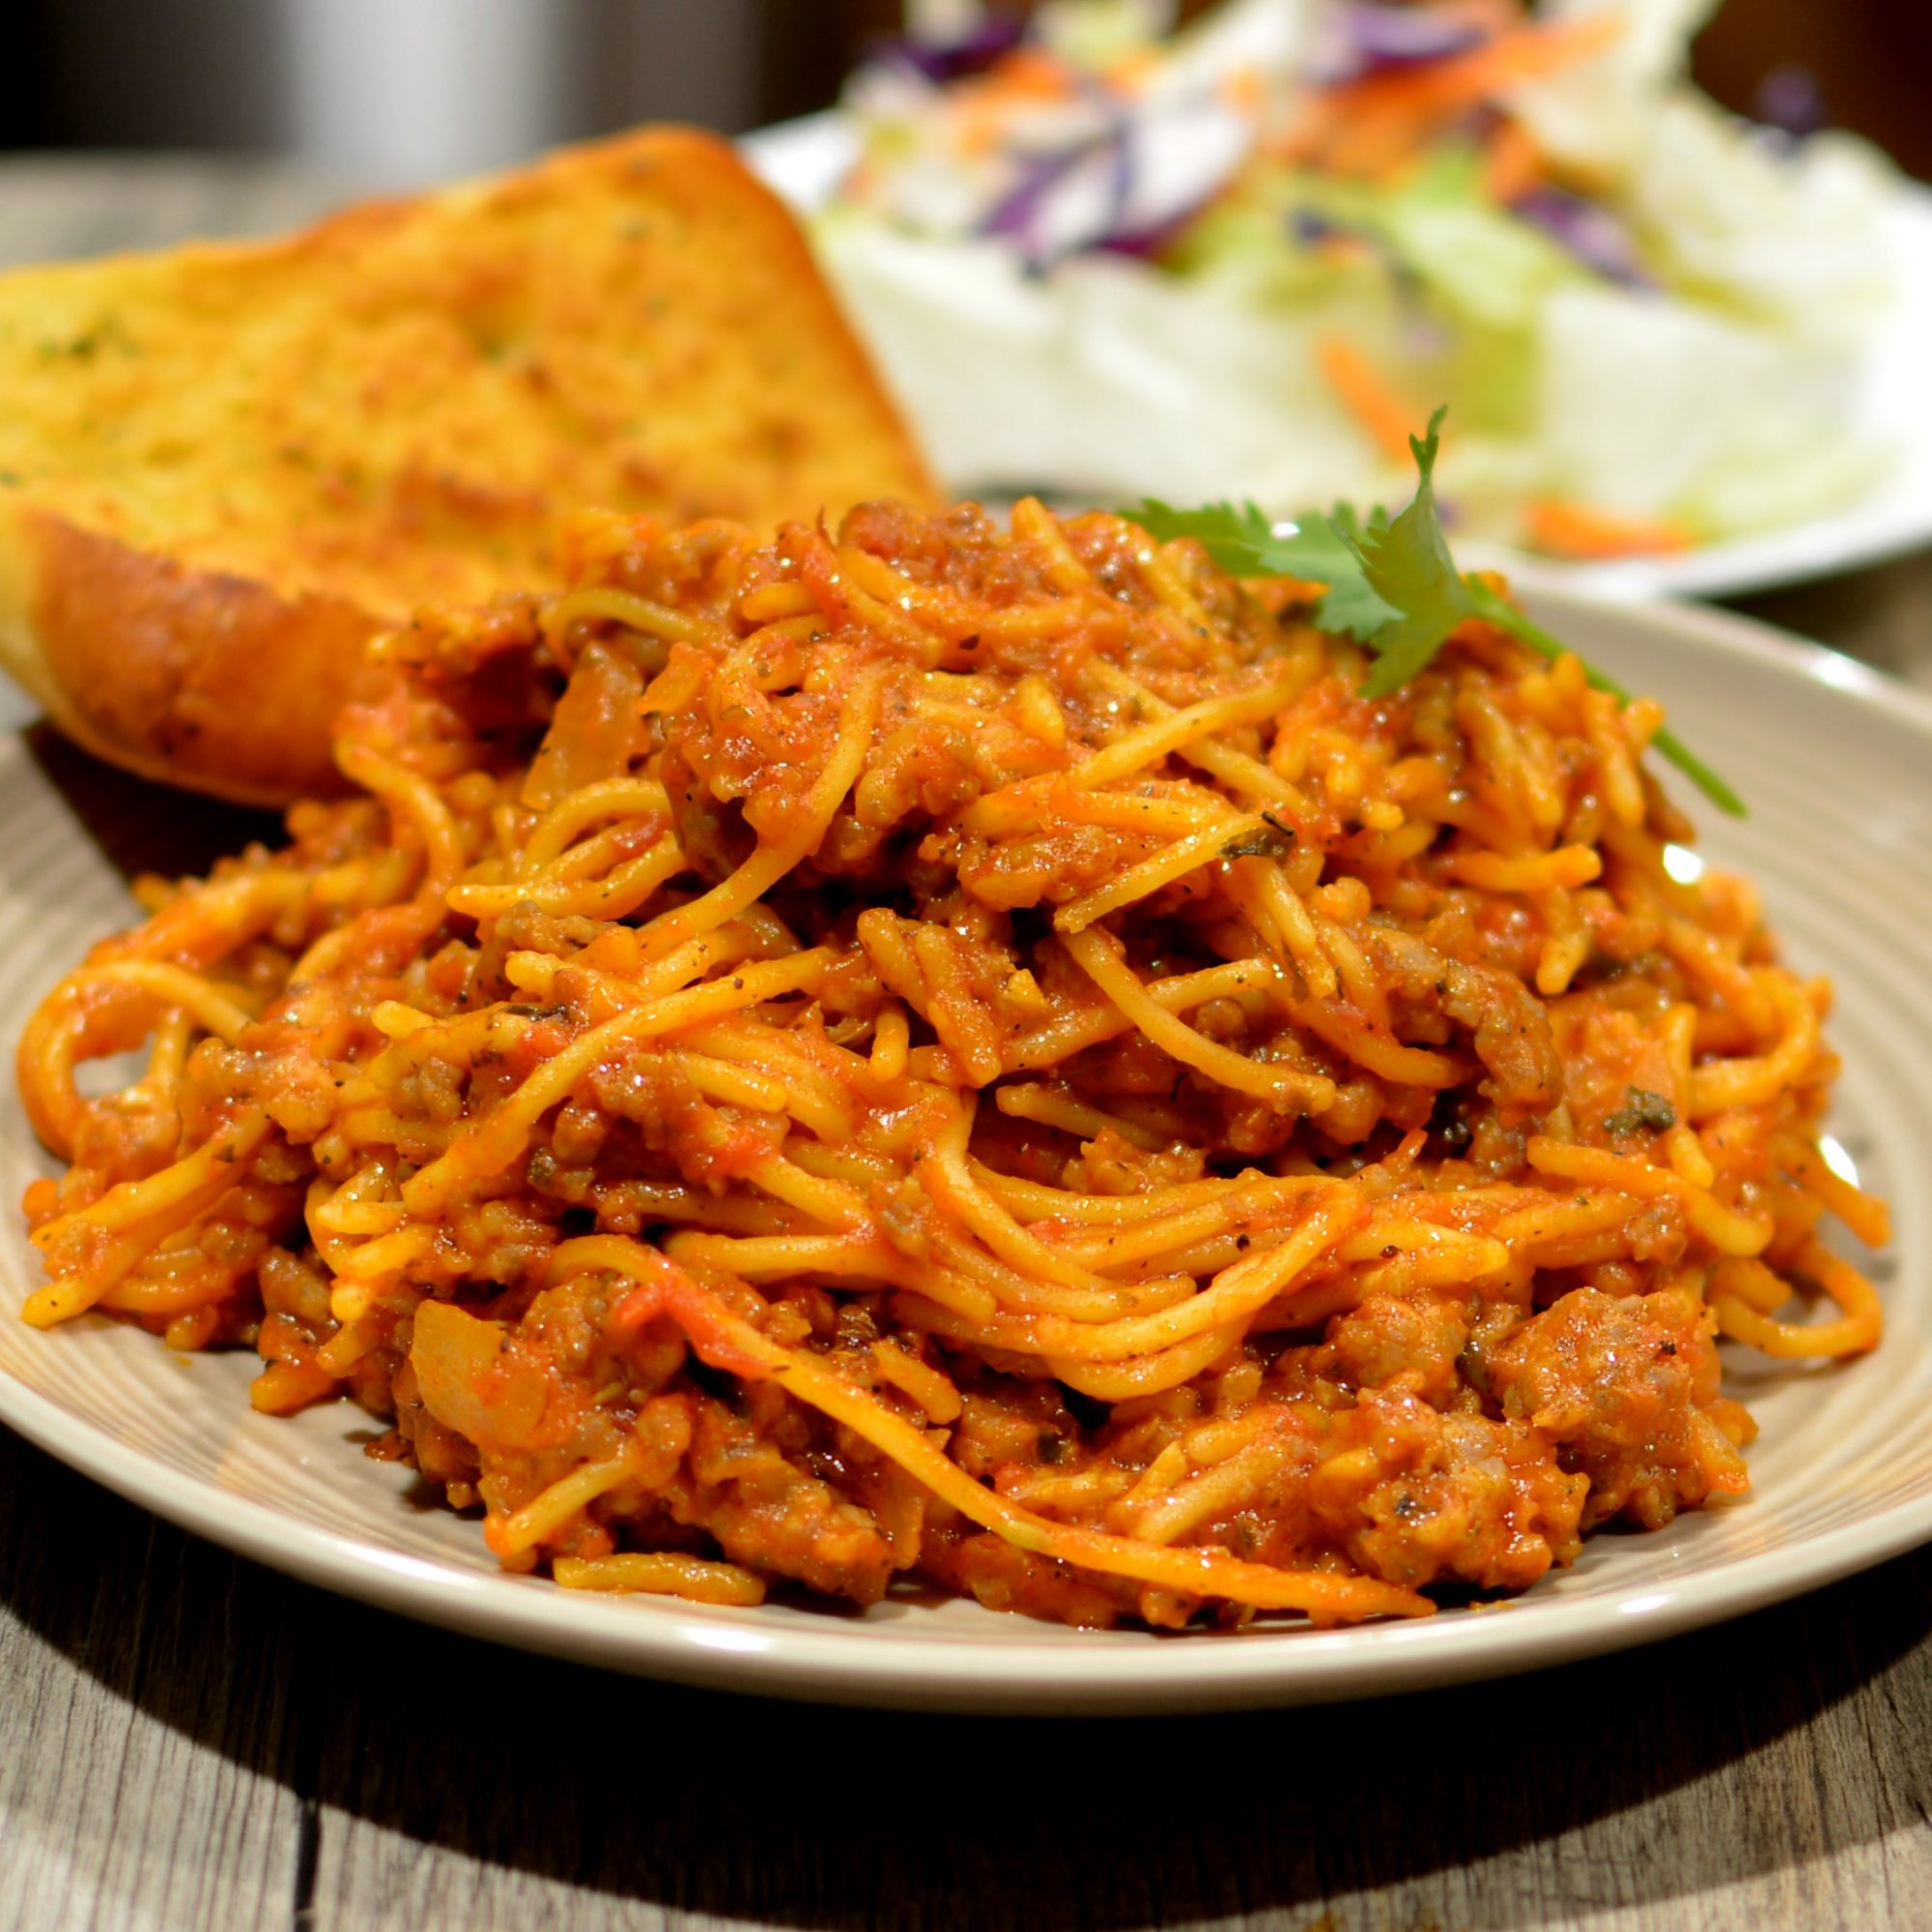 Plate of One-Pot Spaghetti with Meat Sauce with garlic bread